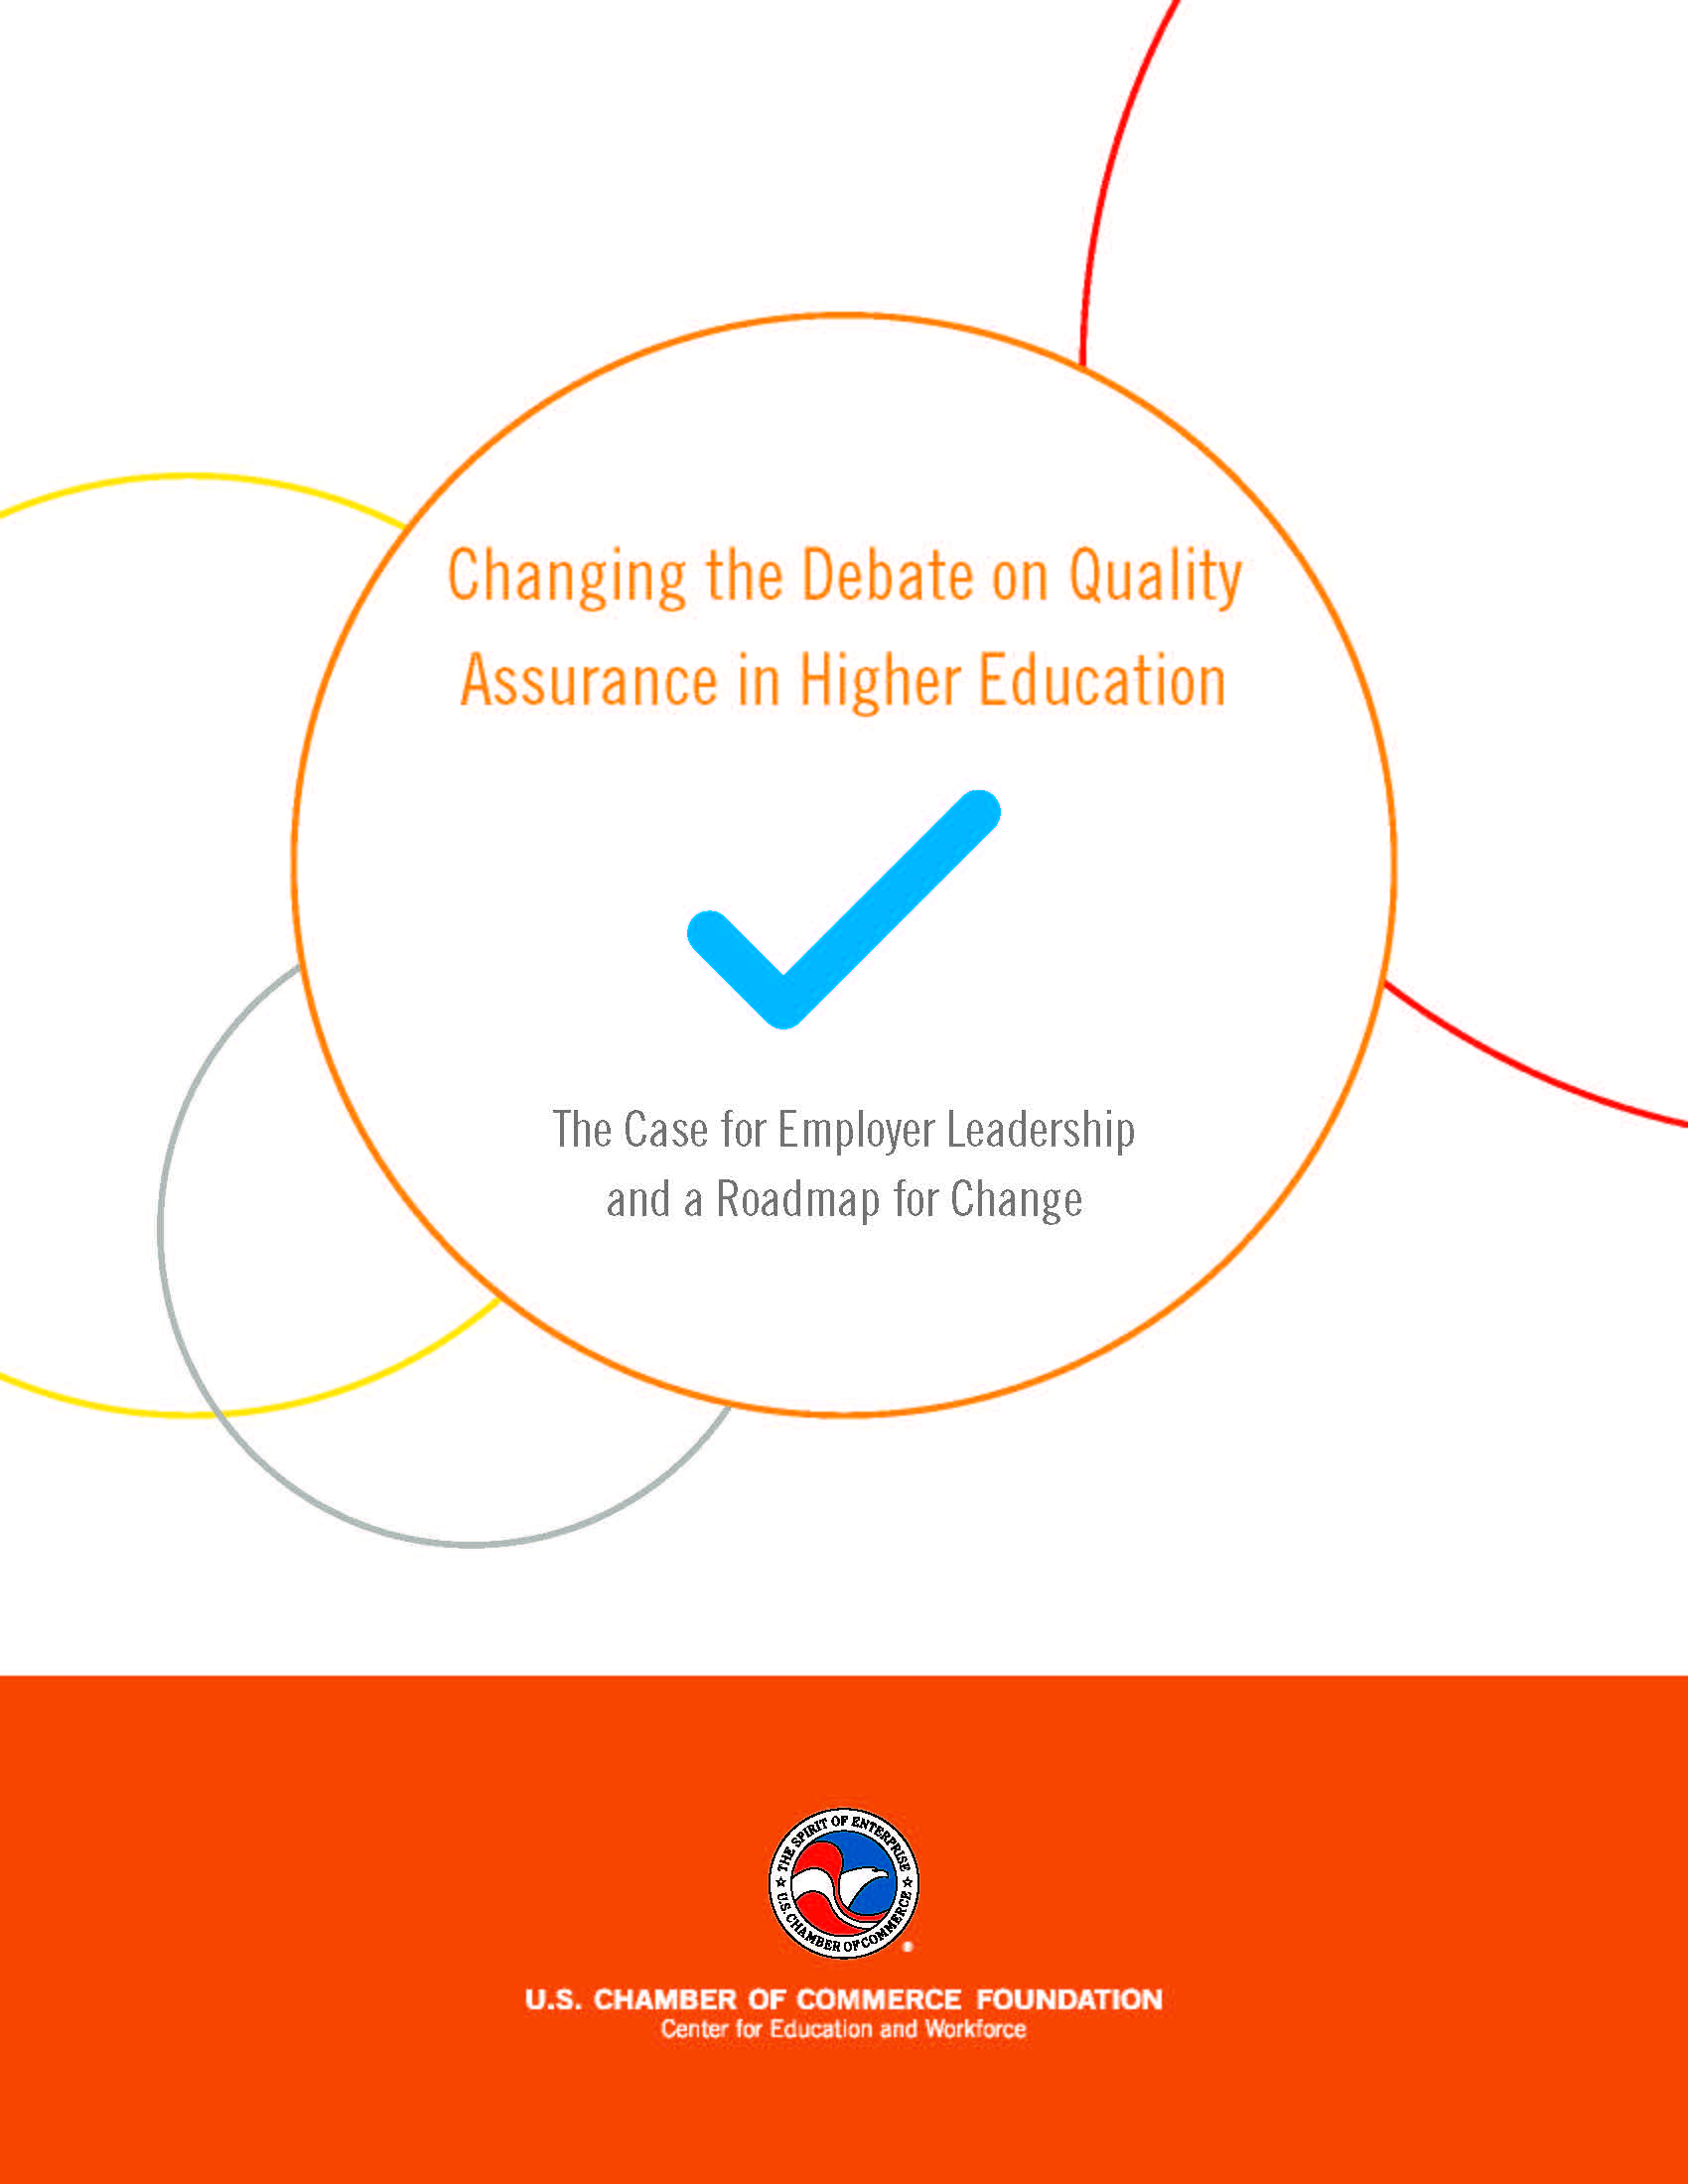 Changing the Debate on Quality Assurance Report